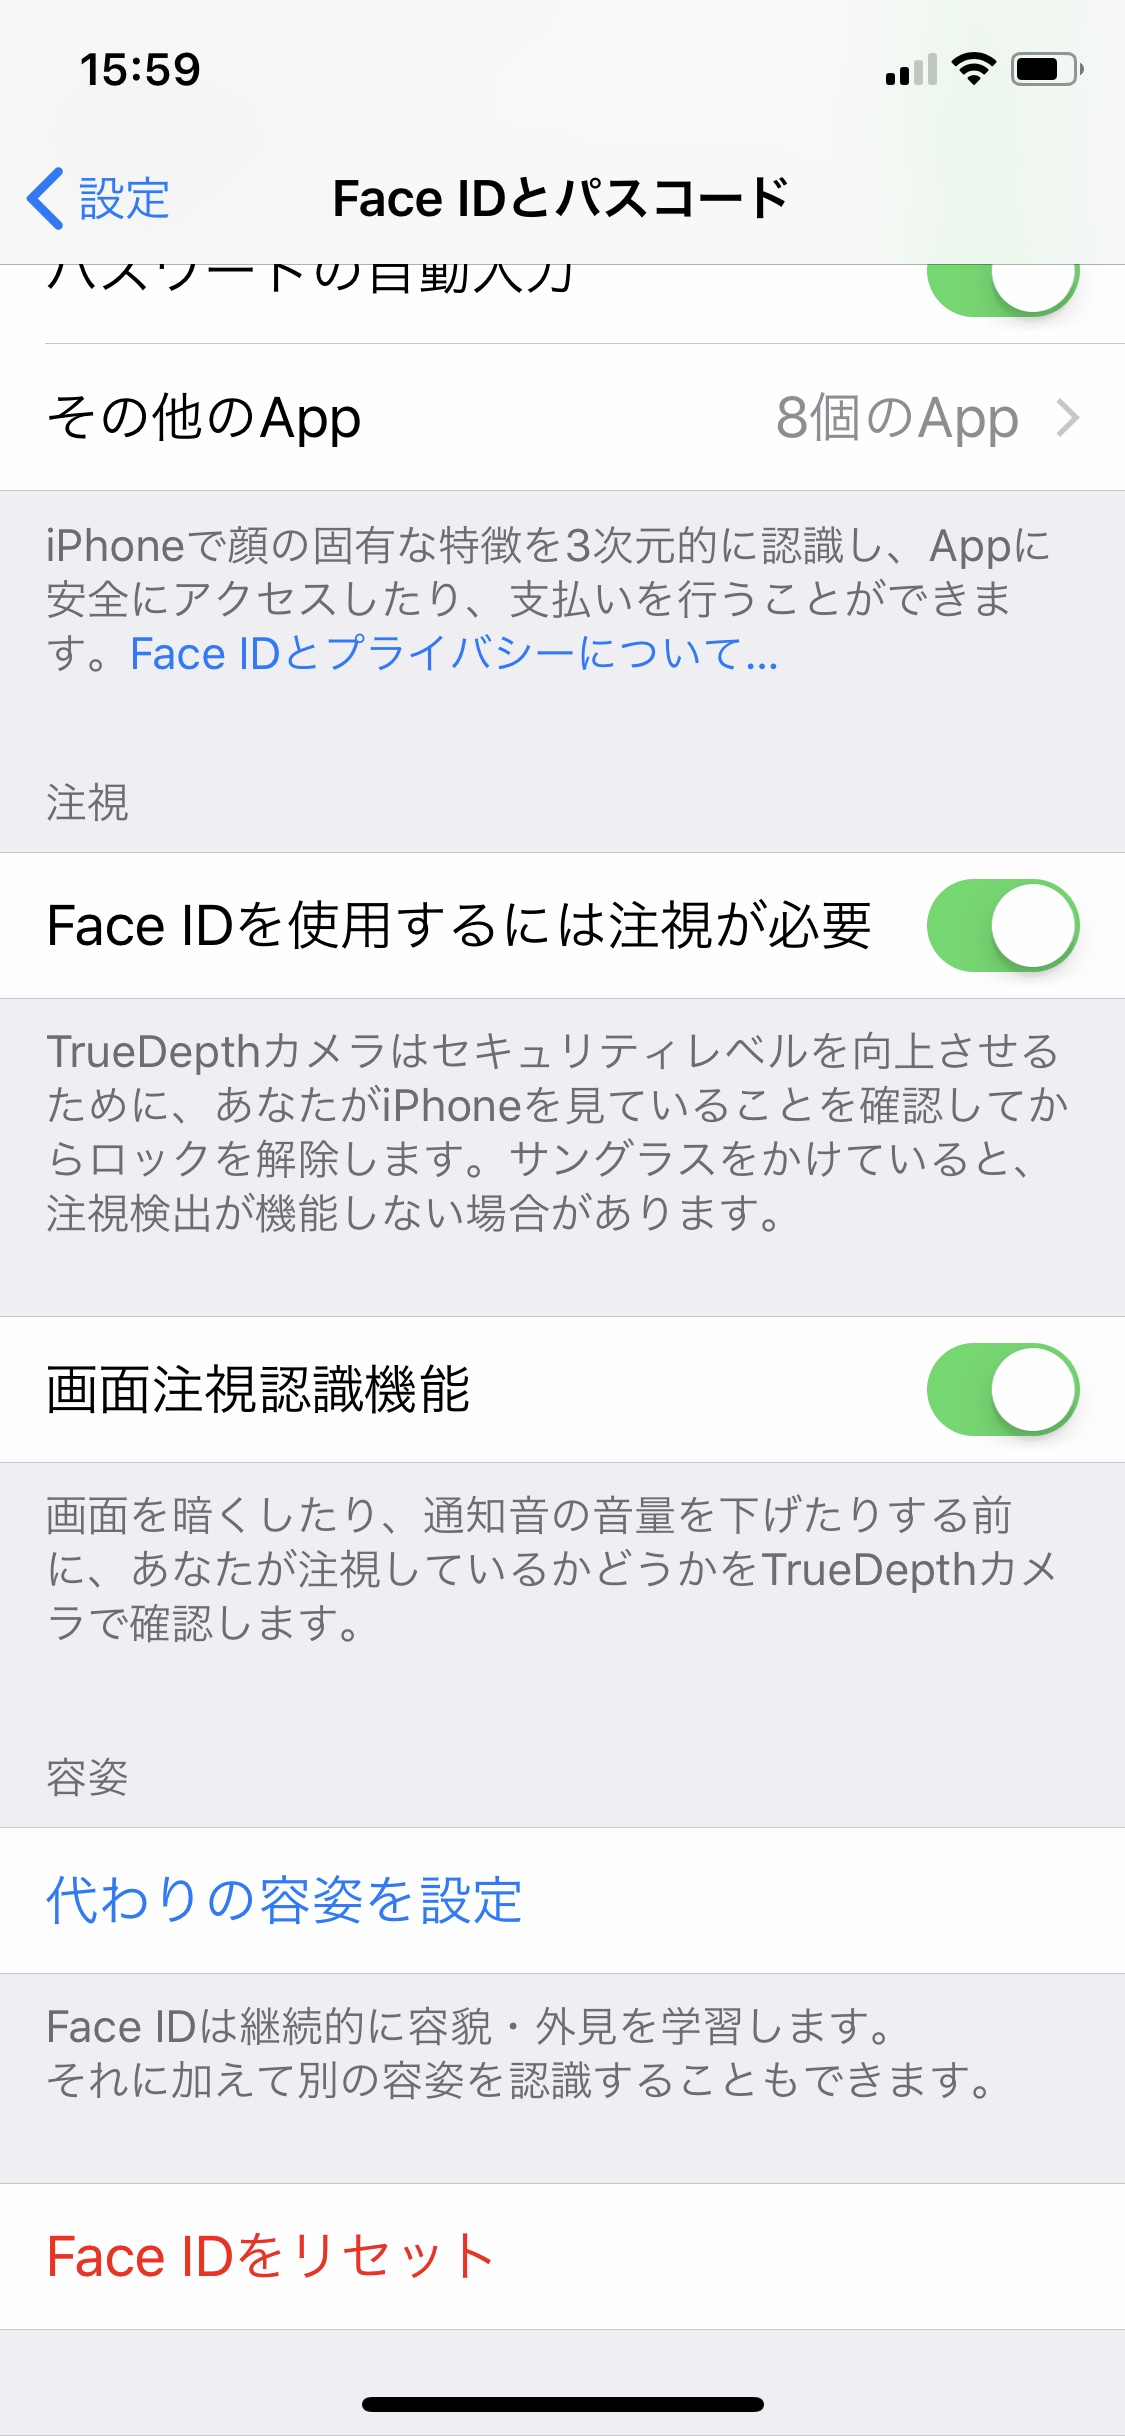 iOS 12 Alternate Appearance in Japanese